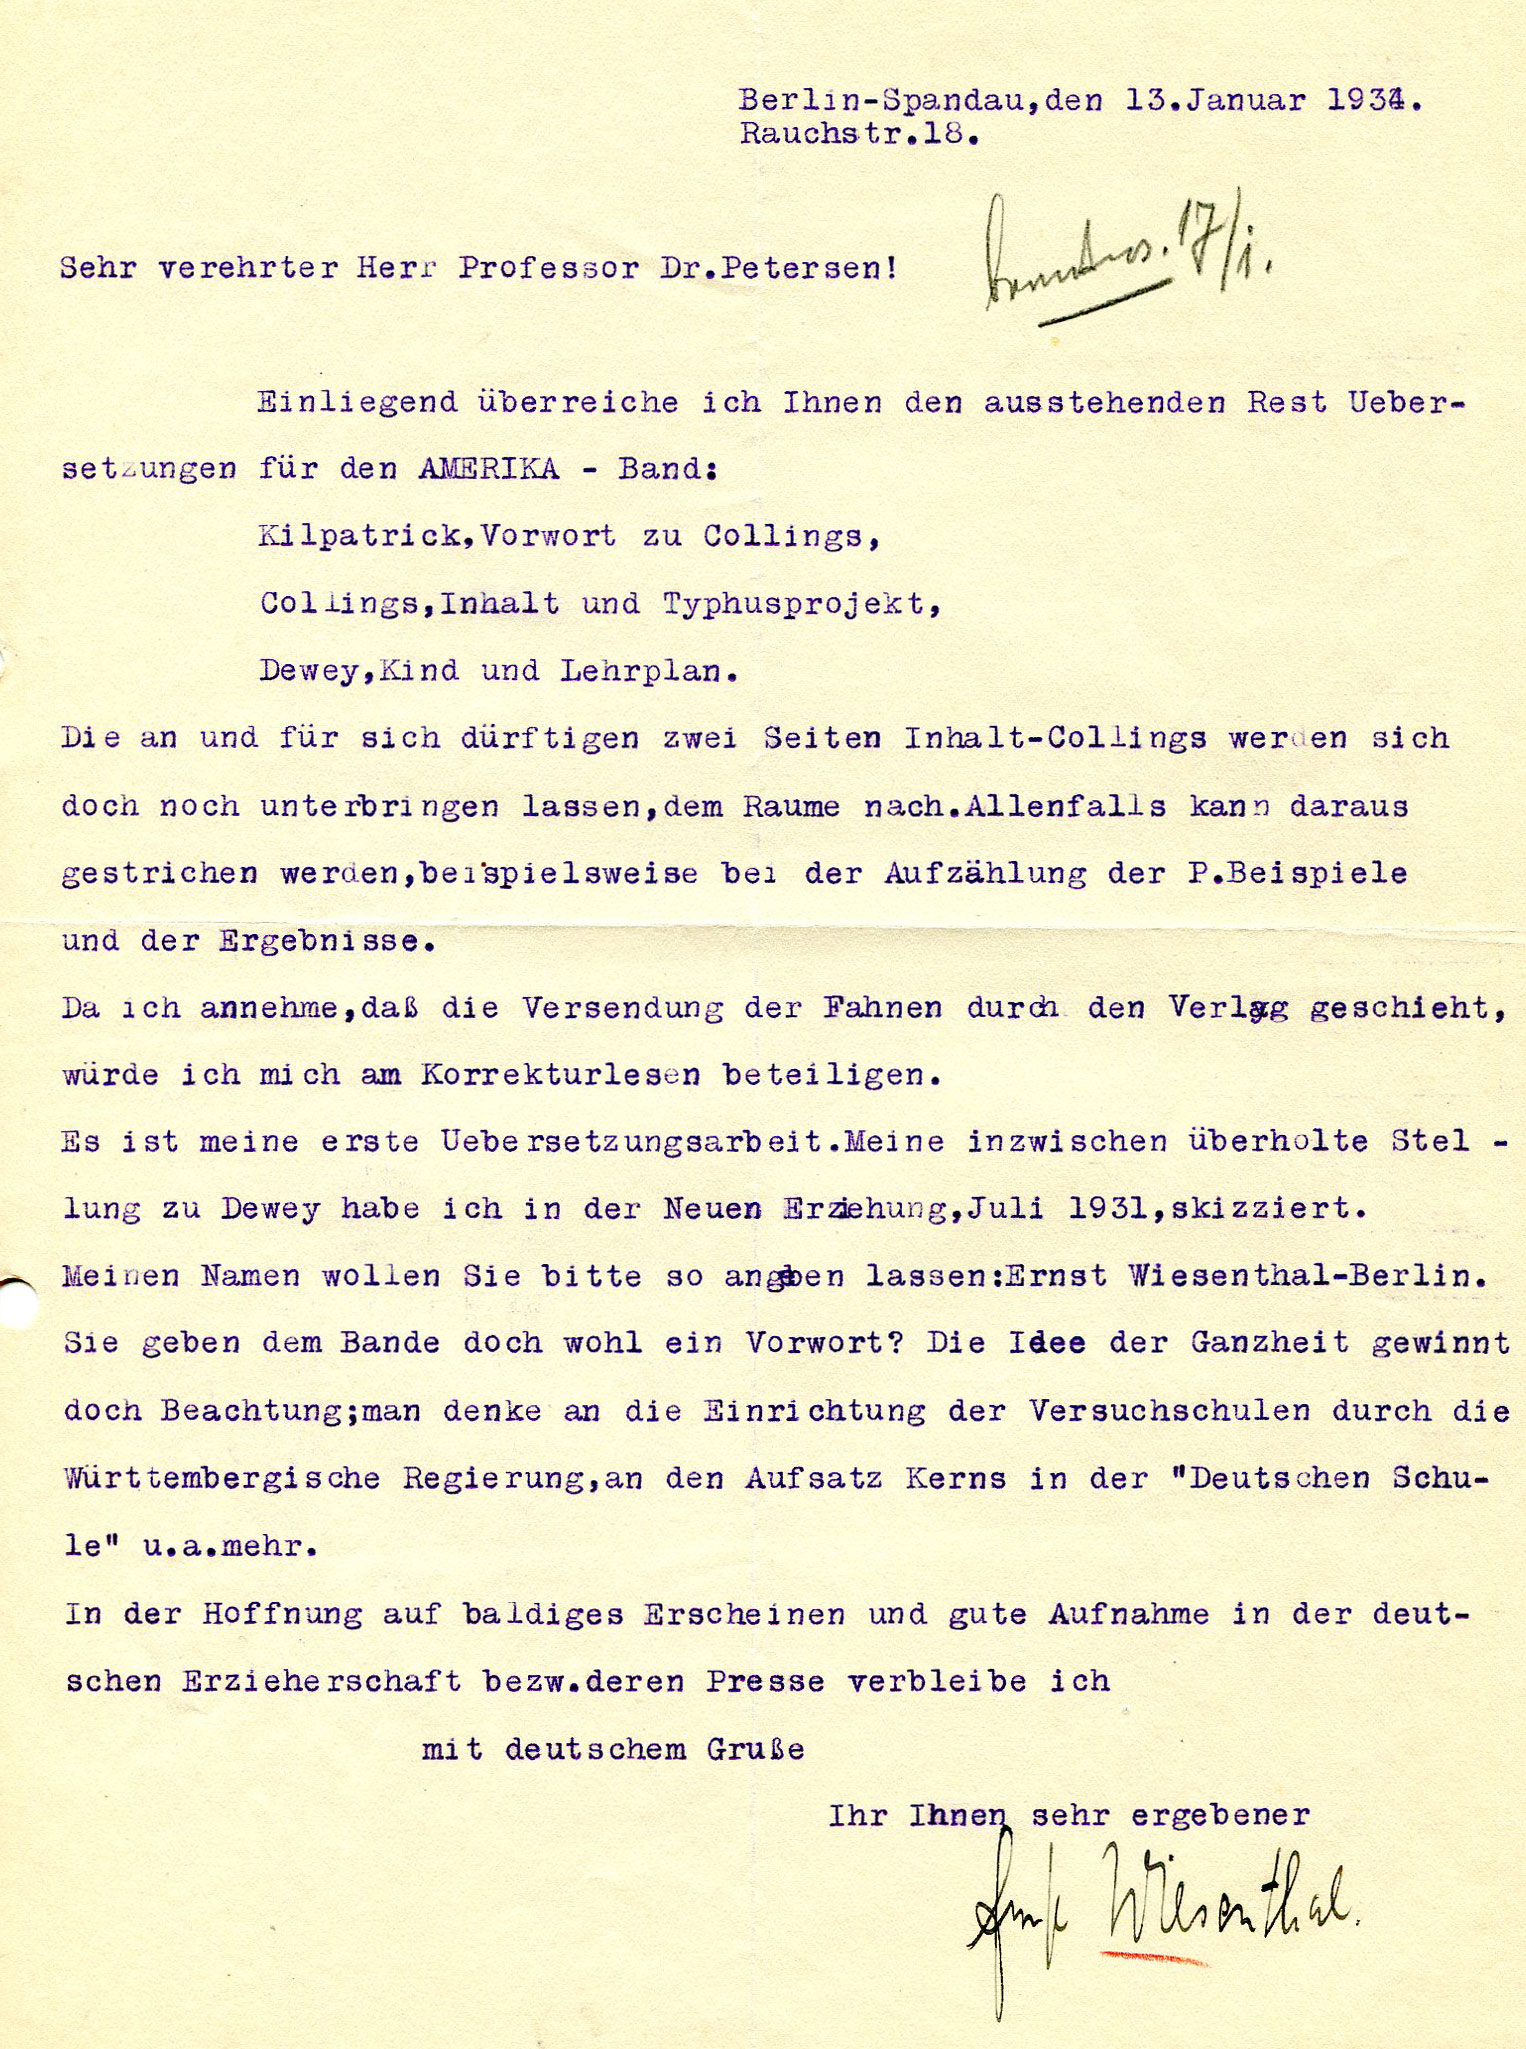 Figure 11: Letter from Ernst Wiesenthal to Peter Petersen, 01-13-1934 (Source: PPAV)